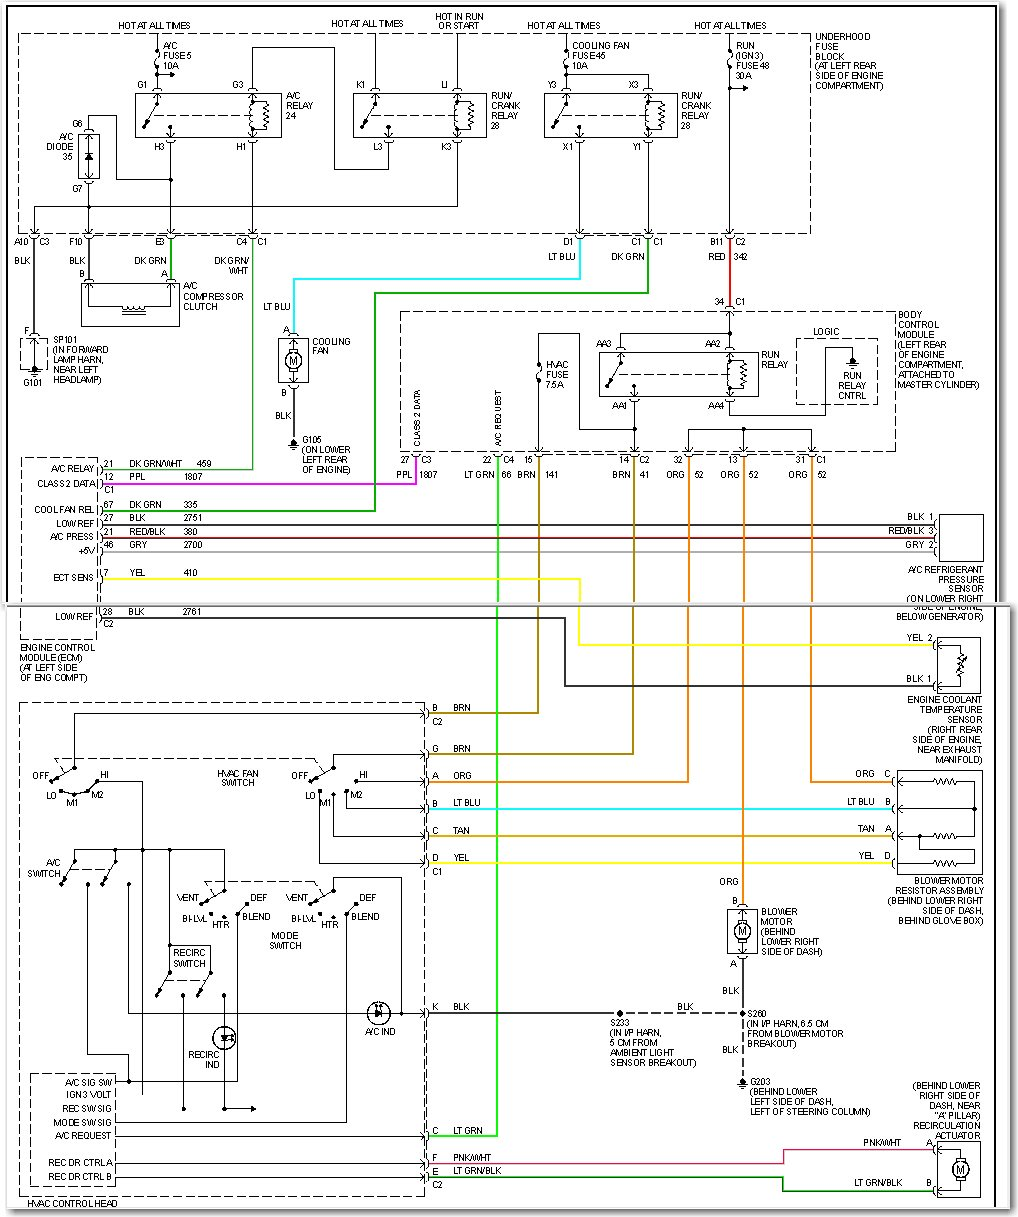 Saturn Blower Motor Wiring Diagram Free Picture - wiring diagram home  drab-reference - drab-reference.volleyjesi.it | Saturn Blower Motor Wiring Diagram Free Picture |  | AS Volley Jesi